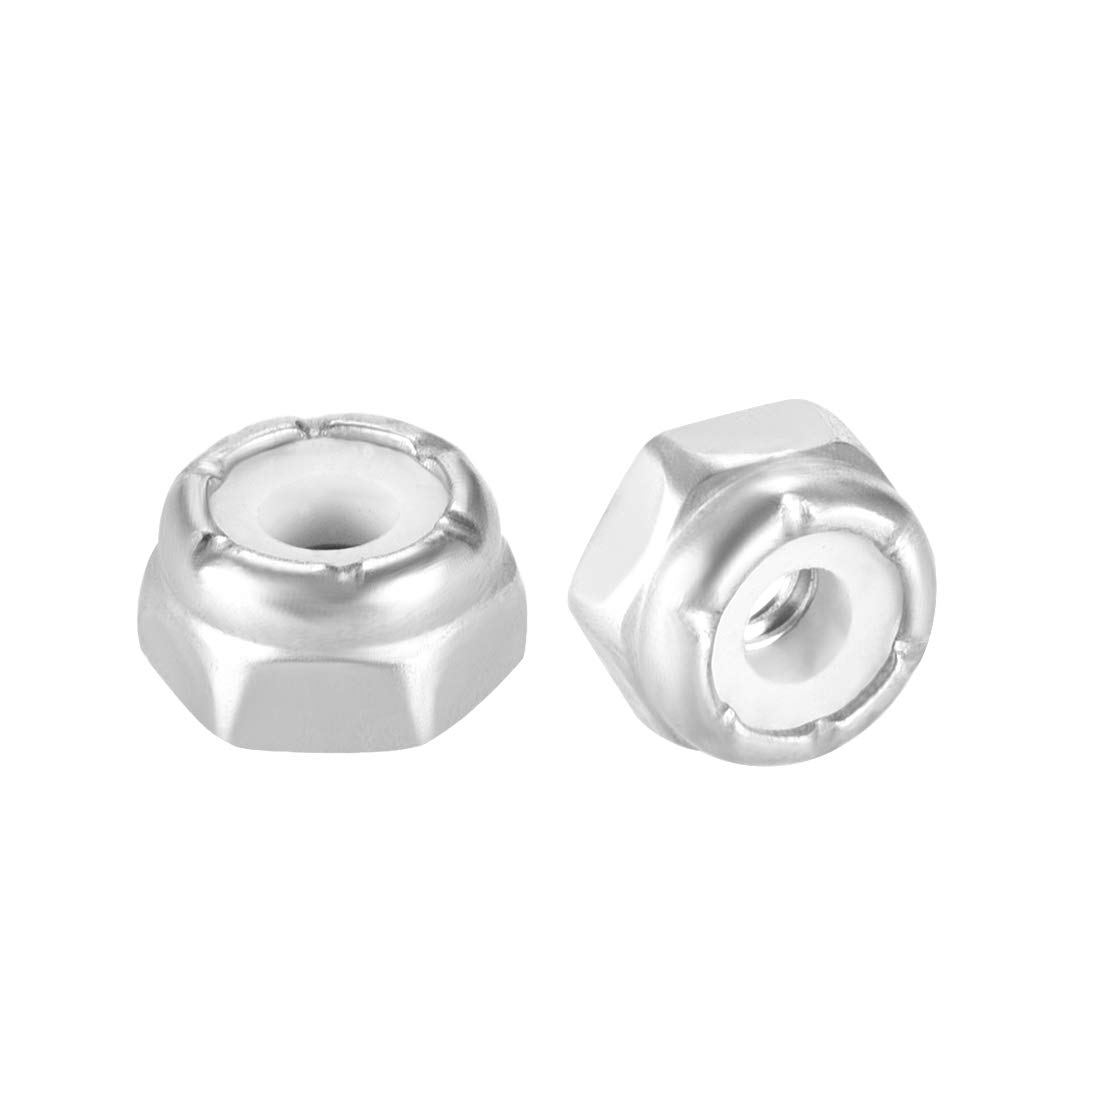 1//4-20 Inch Nylon Insert Hex Lock Nuts 18-8 304 Stainless Steel 120 Pieces